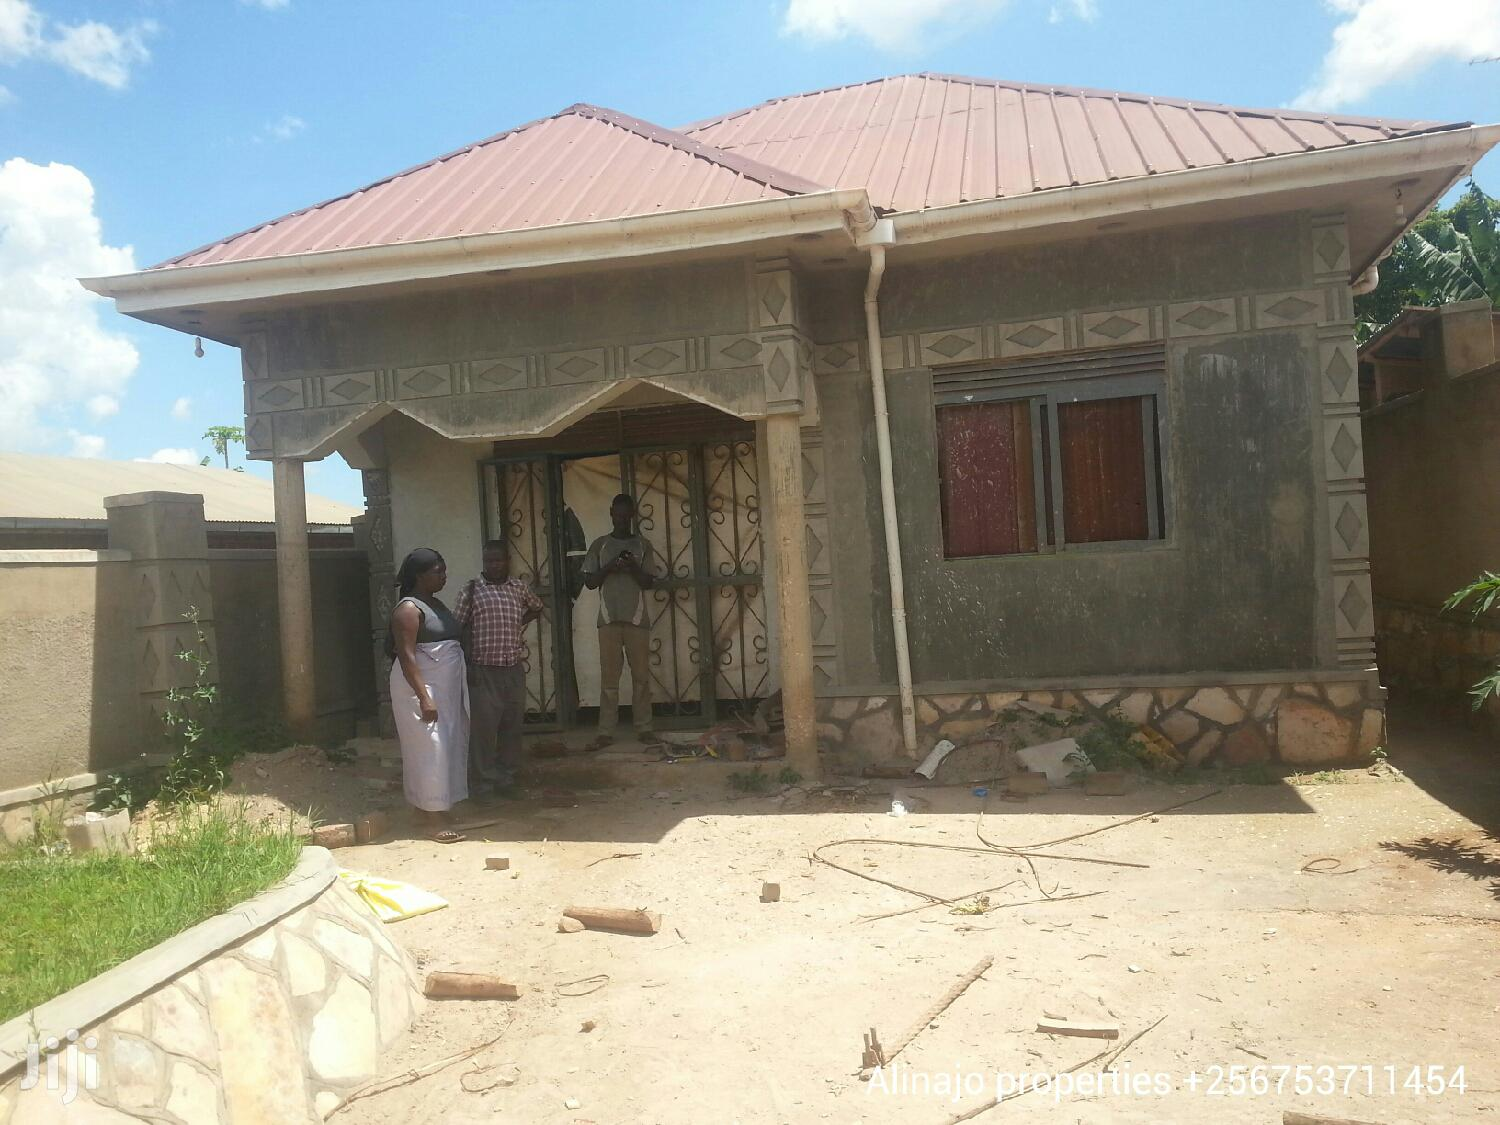 House for Sell With Land Tittle in Gayaza Namavundu